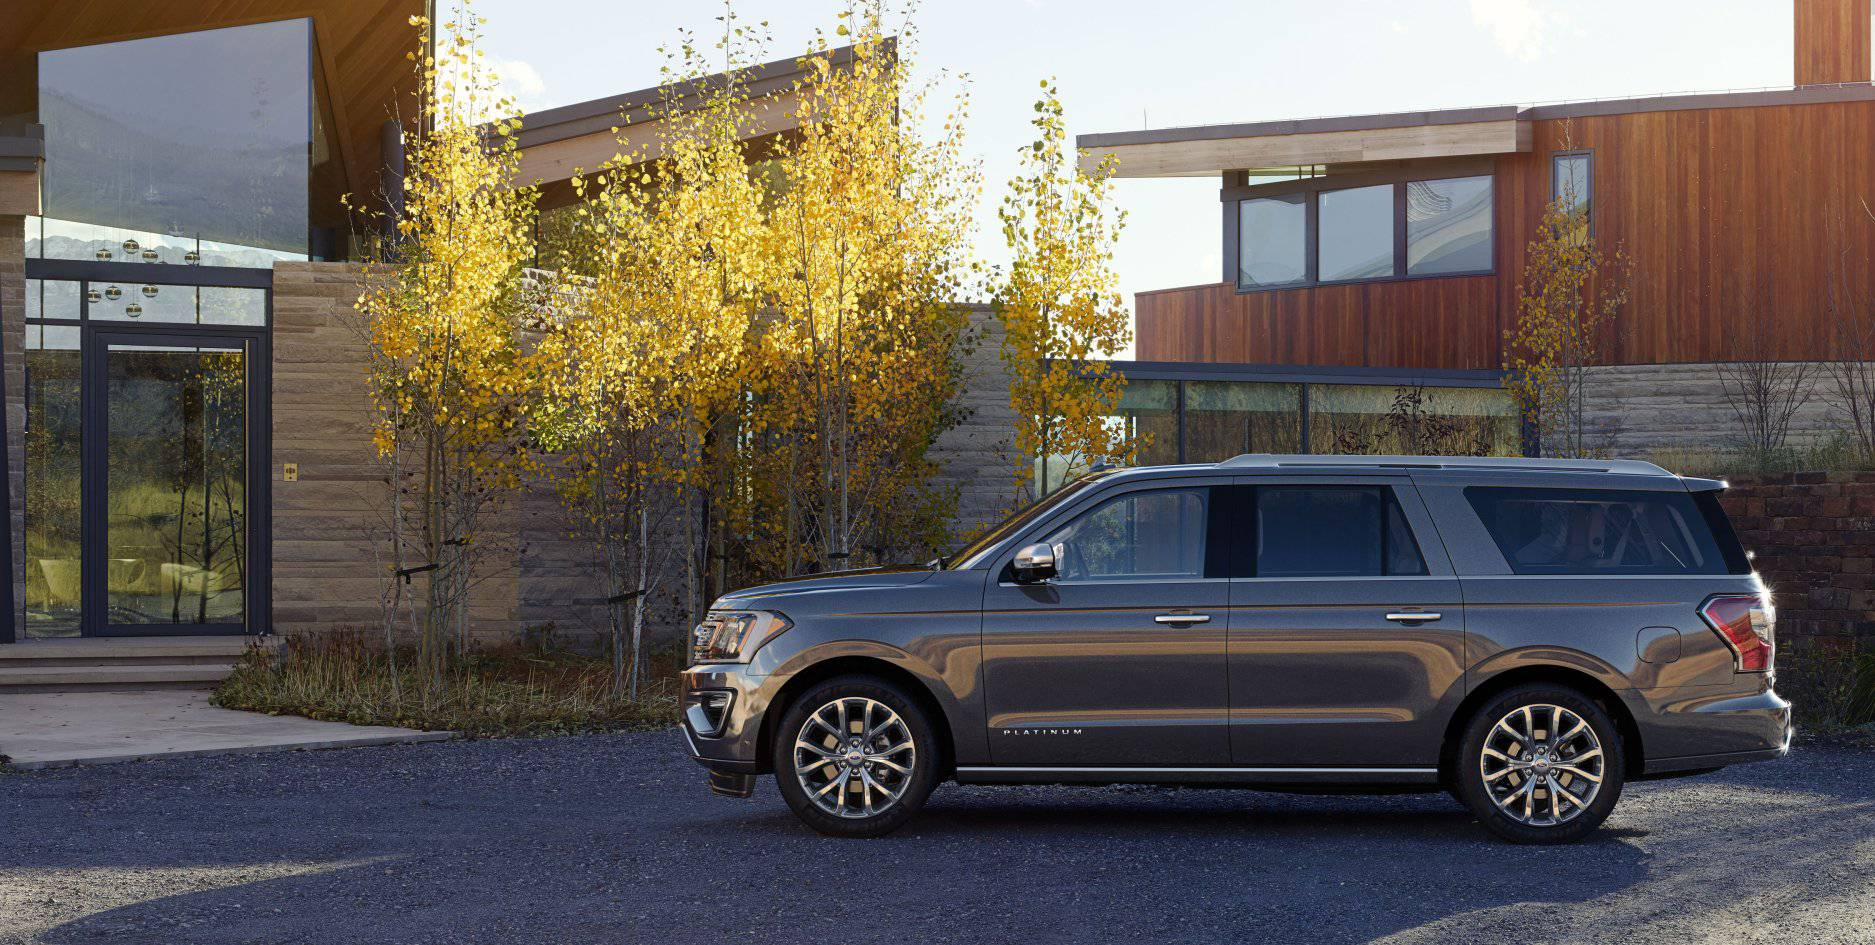 2018 Ford Expedition Preview in Catskill, NY